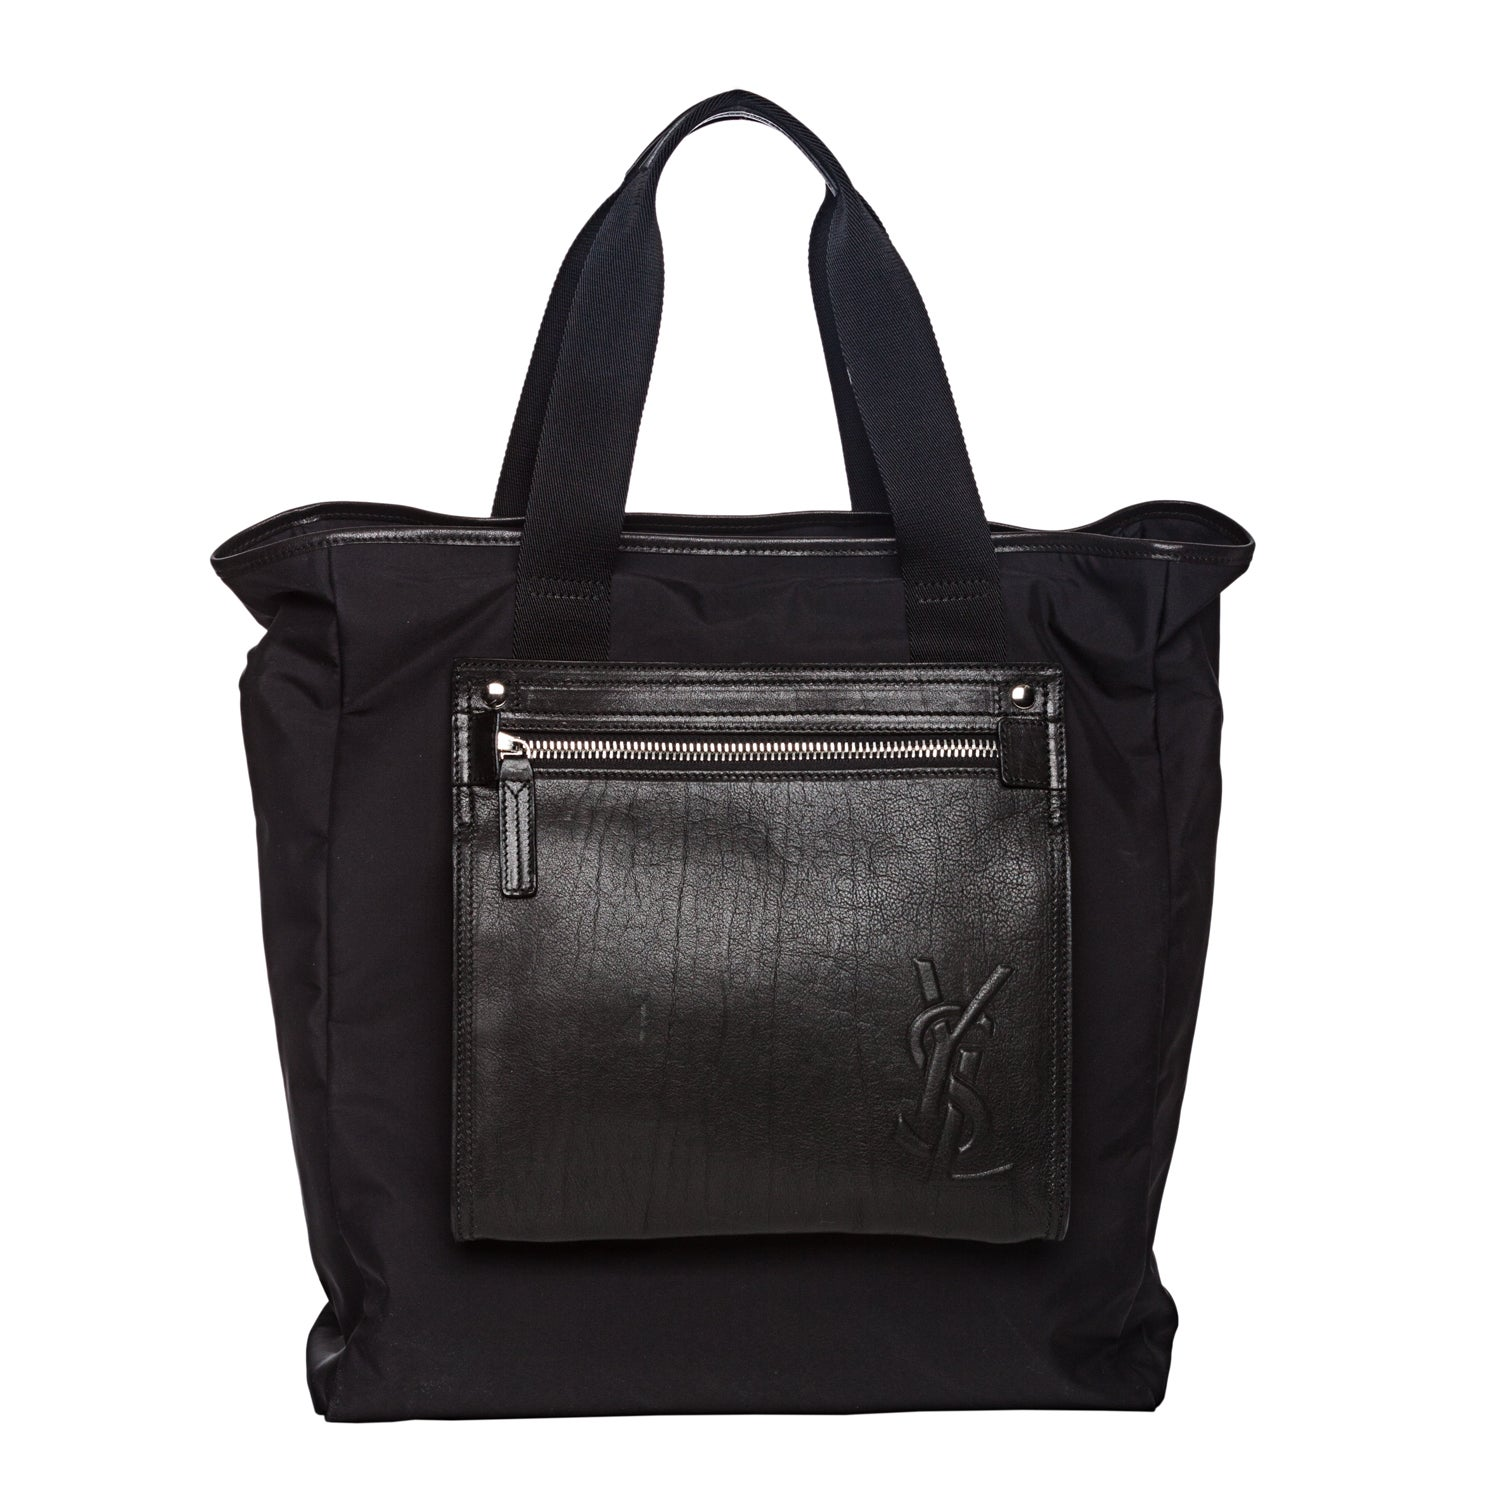 Yves Saint Laurent 275311 F334N 1000 East West Tote